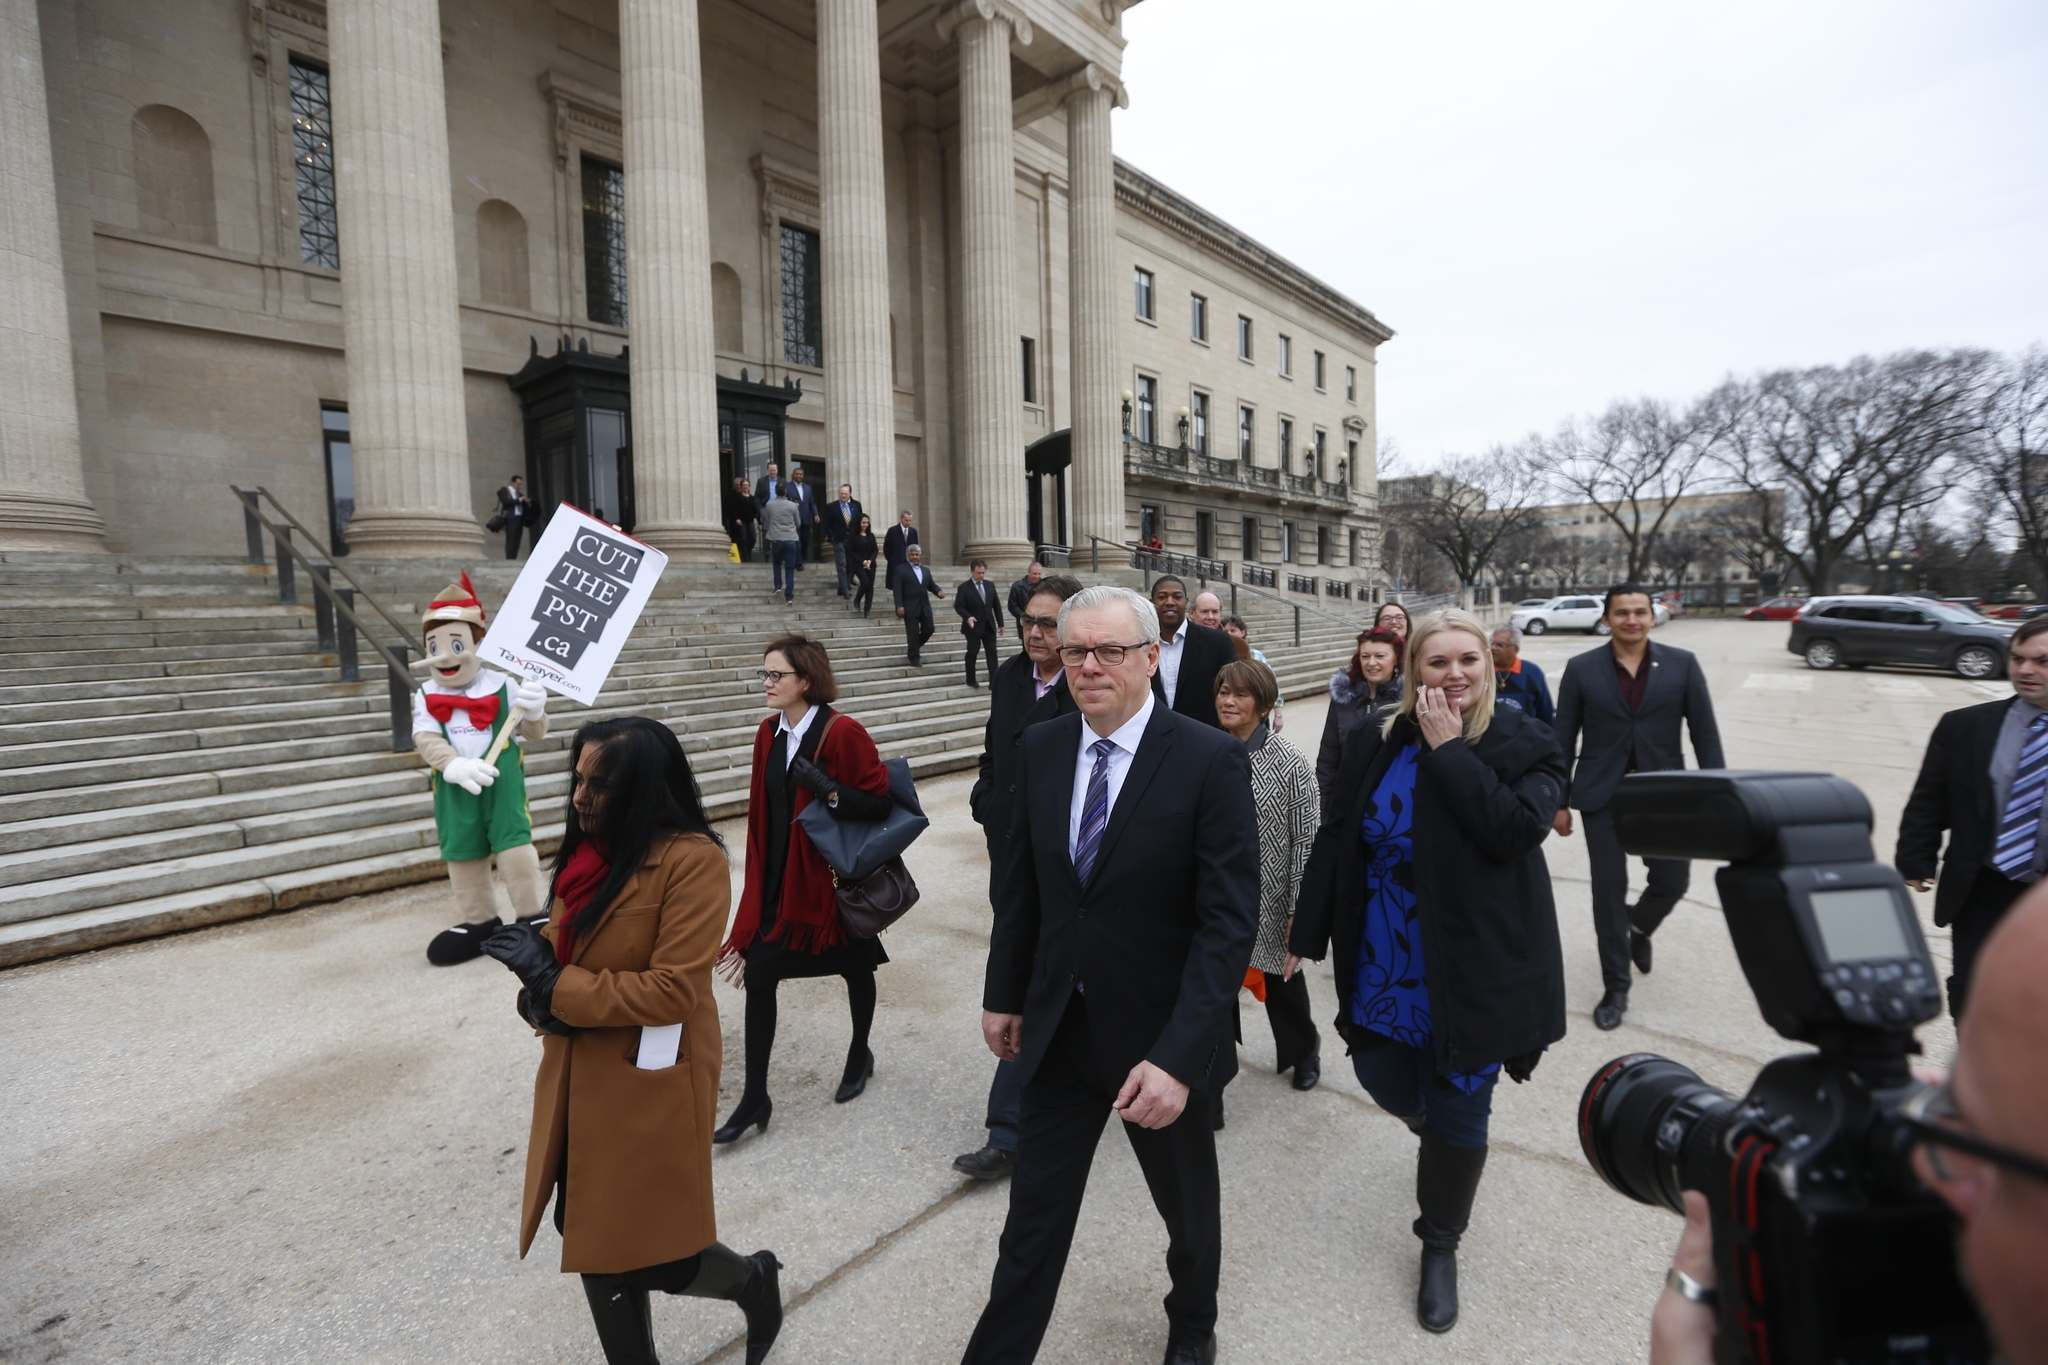 WAYNE GLOWACKI / WINNIPEG FREE PRESS</p><p>A protester is seen during the NDP procession to Government House.</p>